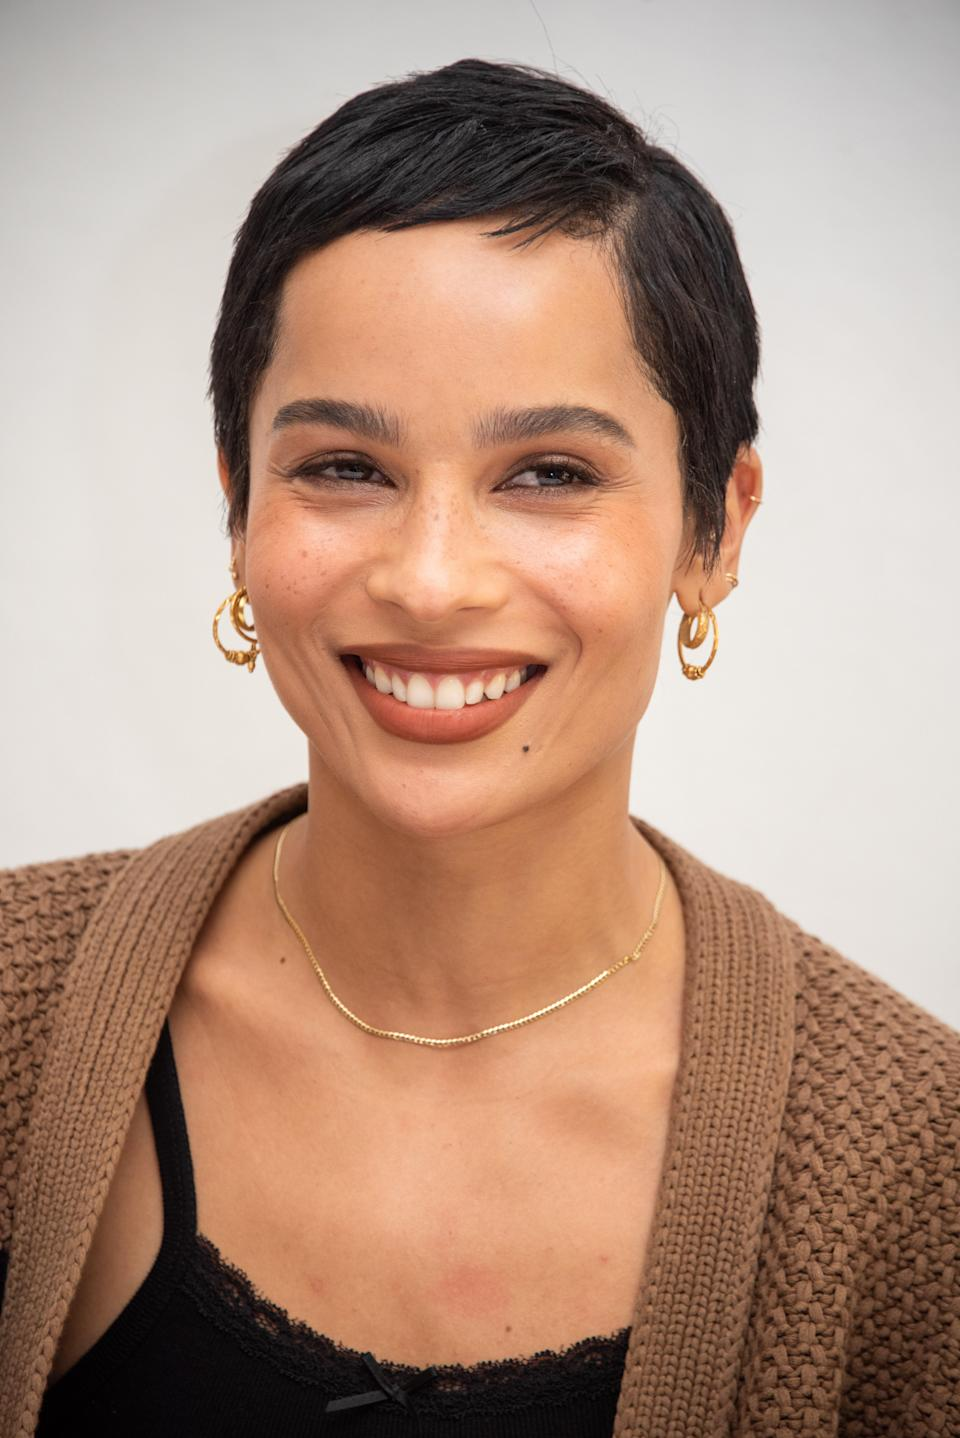 """Summer is the perfect time to try a true pixie cut like Zoë Kravitz's. The angular almost-bangs make this cut feel both vintage and modern at the same time. Time to make <a href=""""https://twitter.com/people/status/1162348281755787270?lang=en"""" rel=""""nofollow noopener"""" target=""""_blank"""" data-ylk=""""slk:like Tyra"""" class=""""link rapid-noclick-resp"""">like Tyra</a> and yell """"I <em>said</em> Mia Farrow in <em>Rosemary's Baby</em>"""" at your hairstylist (JK, please don't)."""